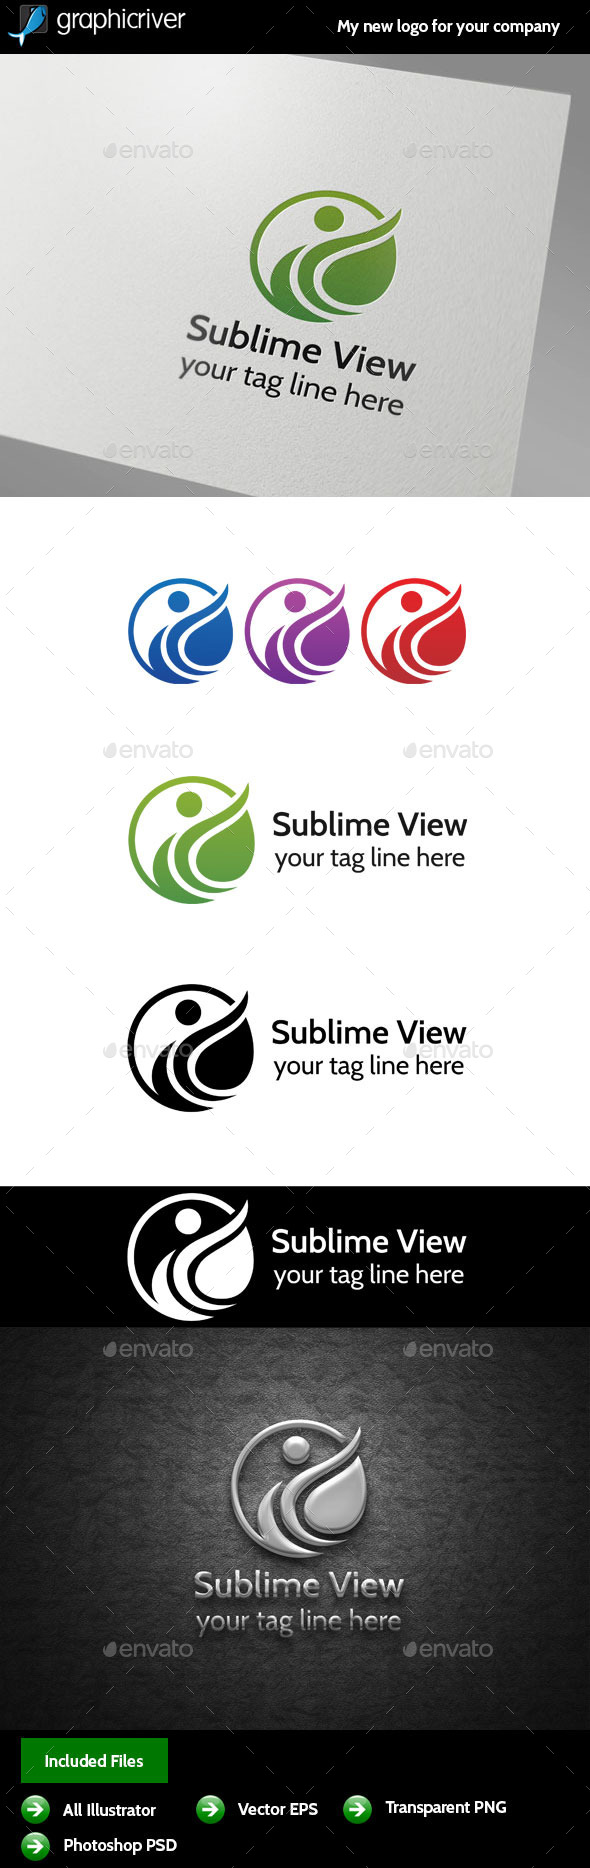 GraphicRiver Sublime View logo 9950547